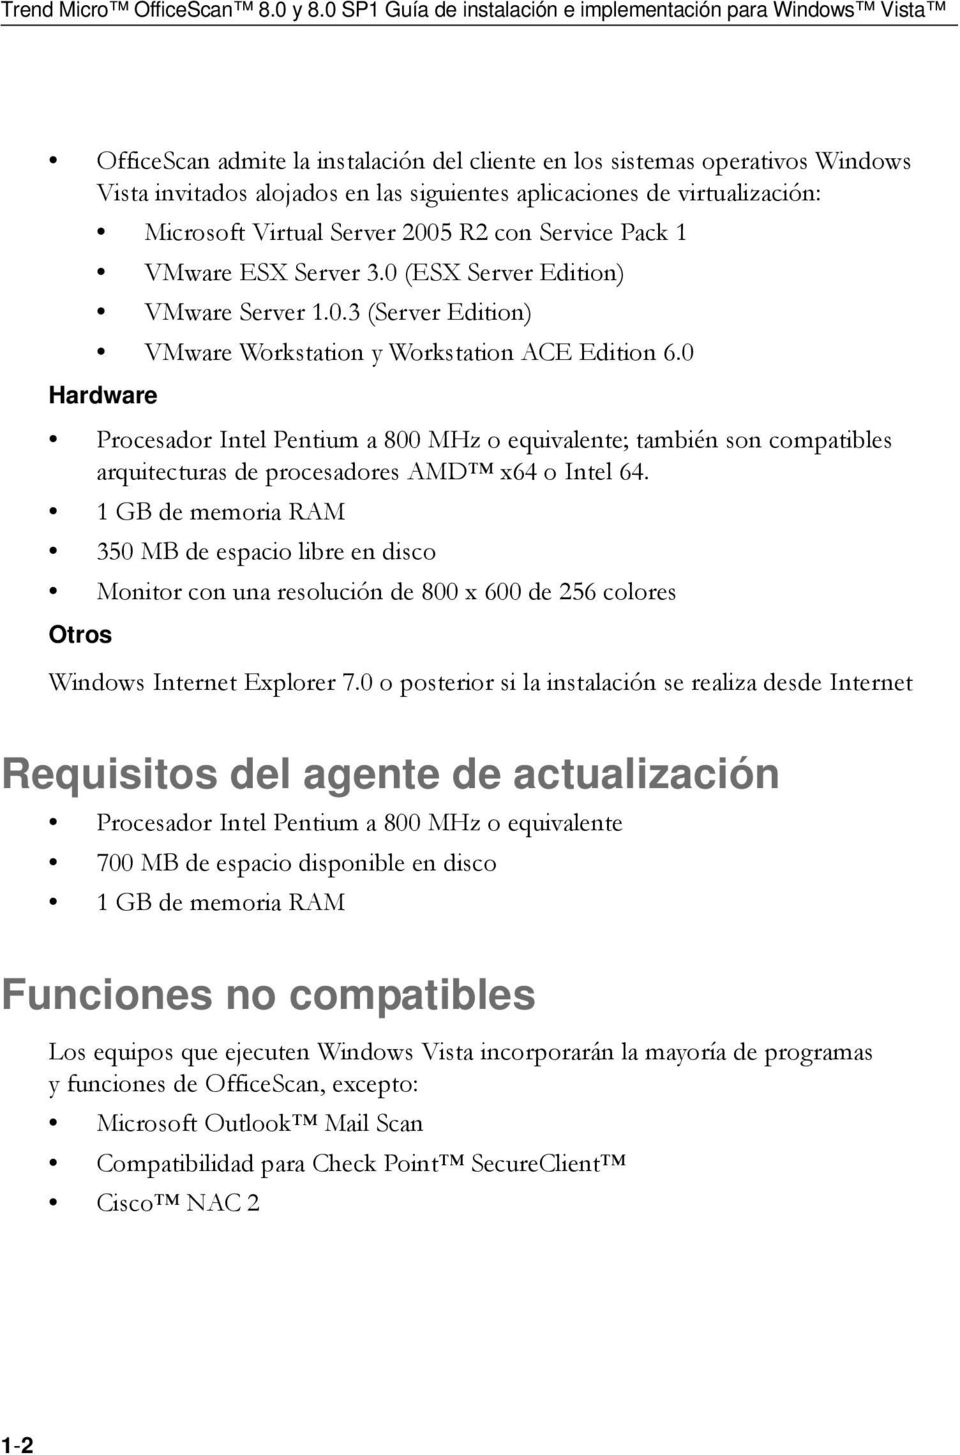 de virtualización: Microsoft Virtual Server 2005 R2 con Service Pack 1 VMware ESX Server 3.0 (ESX Server Edition) VMware Server 1.0.3 (Server Edition) VMware Workstation y Workstation ACE Edition 6.